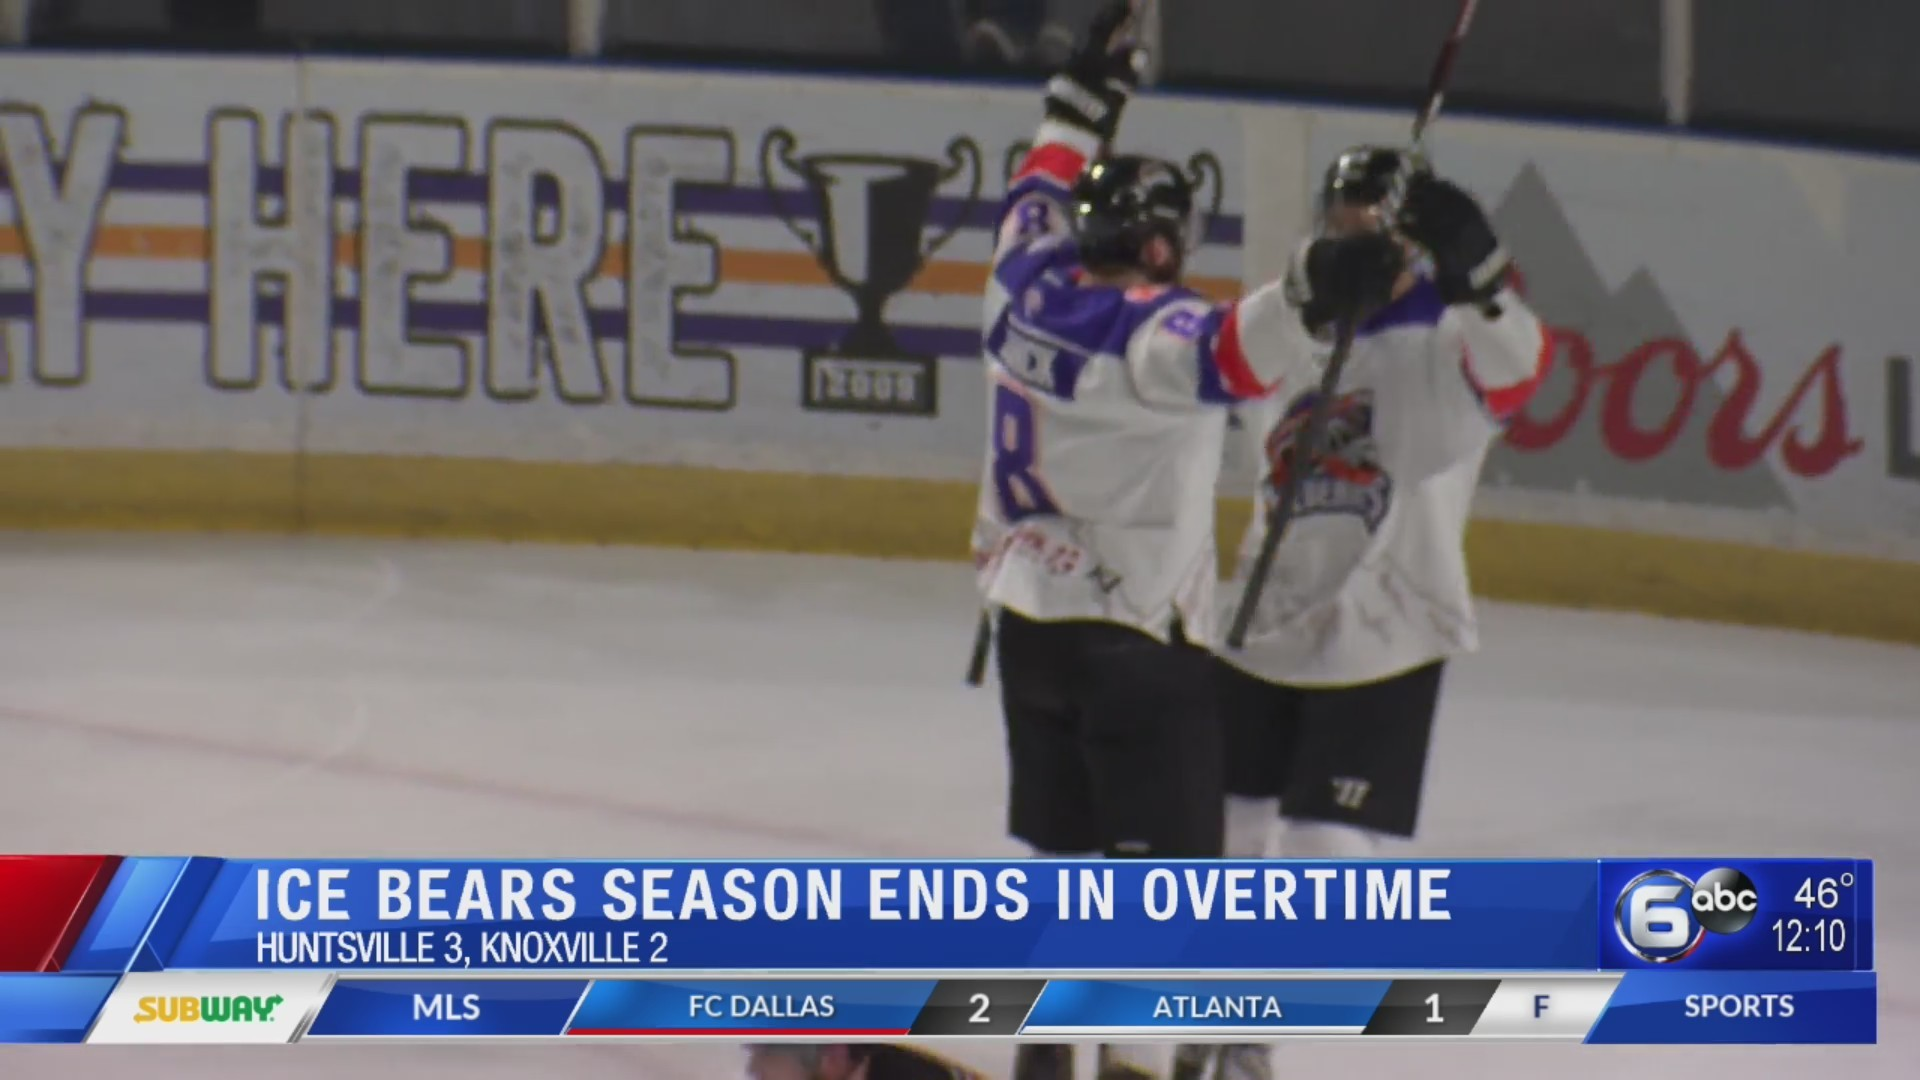 Knoxville_Ice_Bears_season_ends_in_overt_0_20190421112650